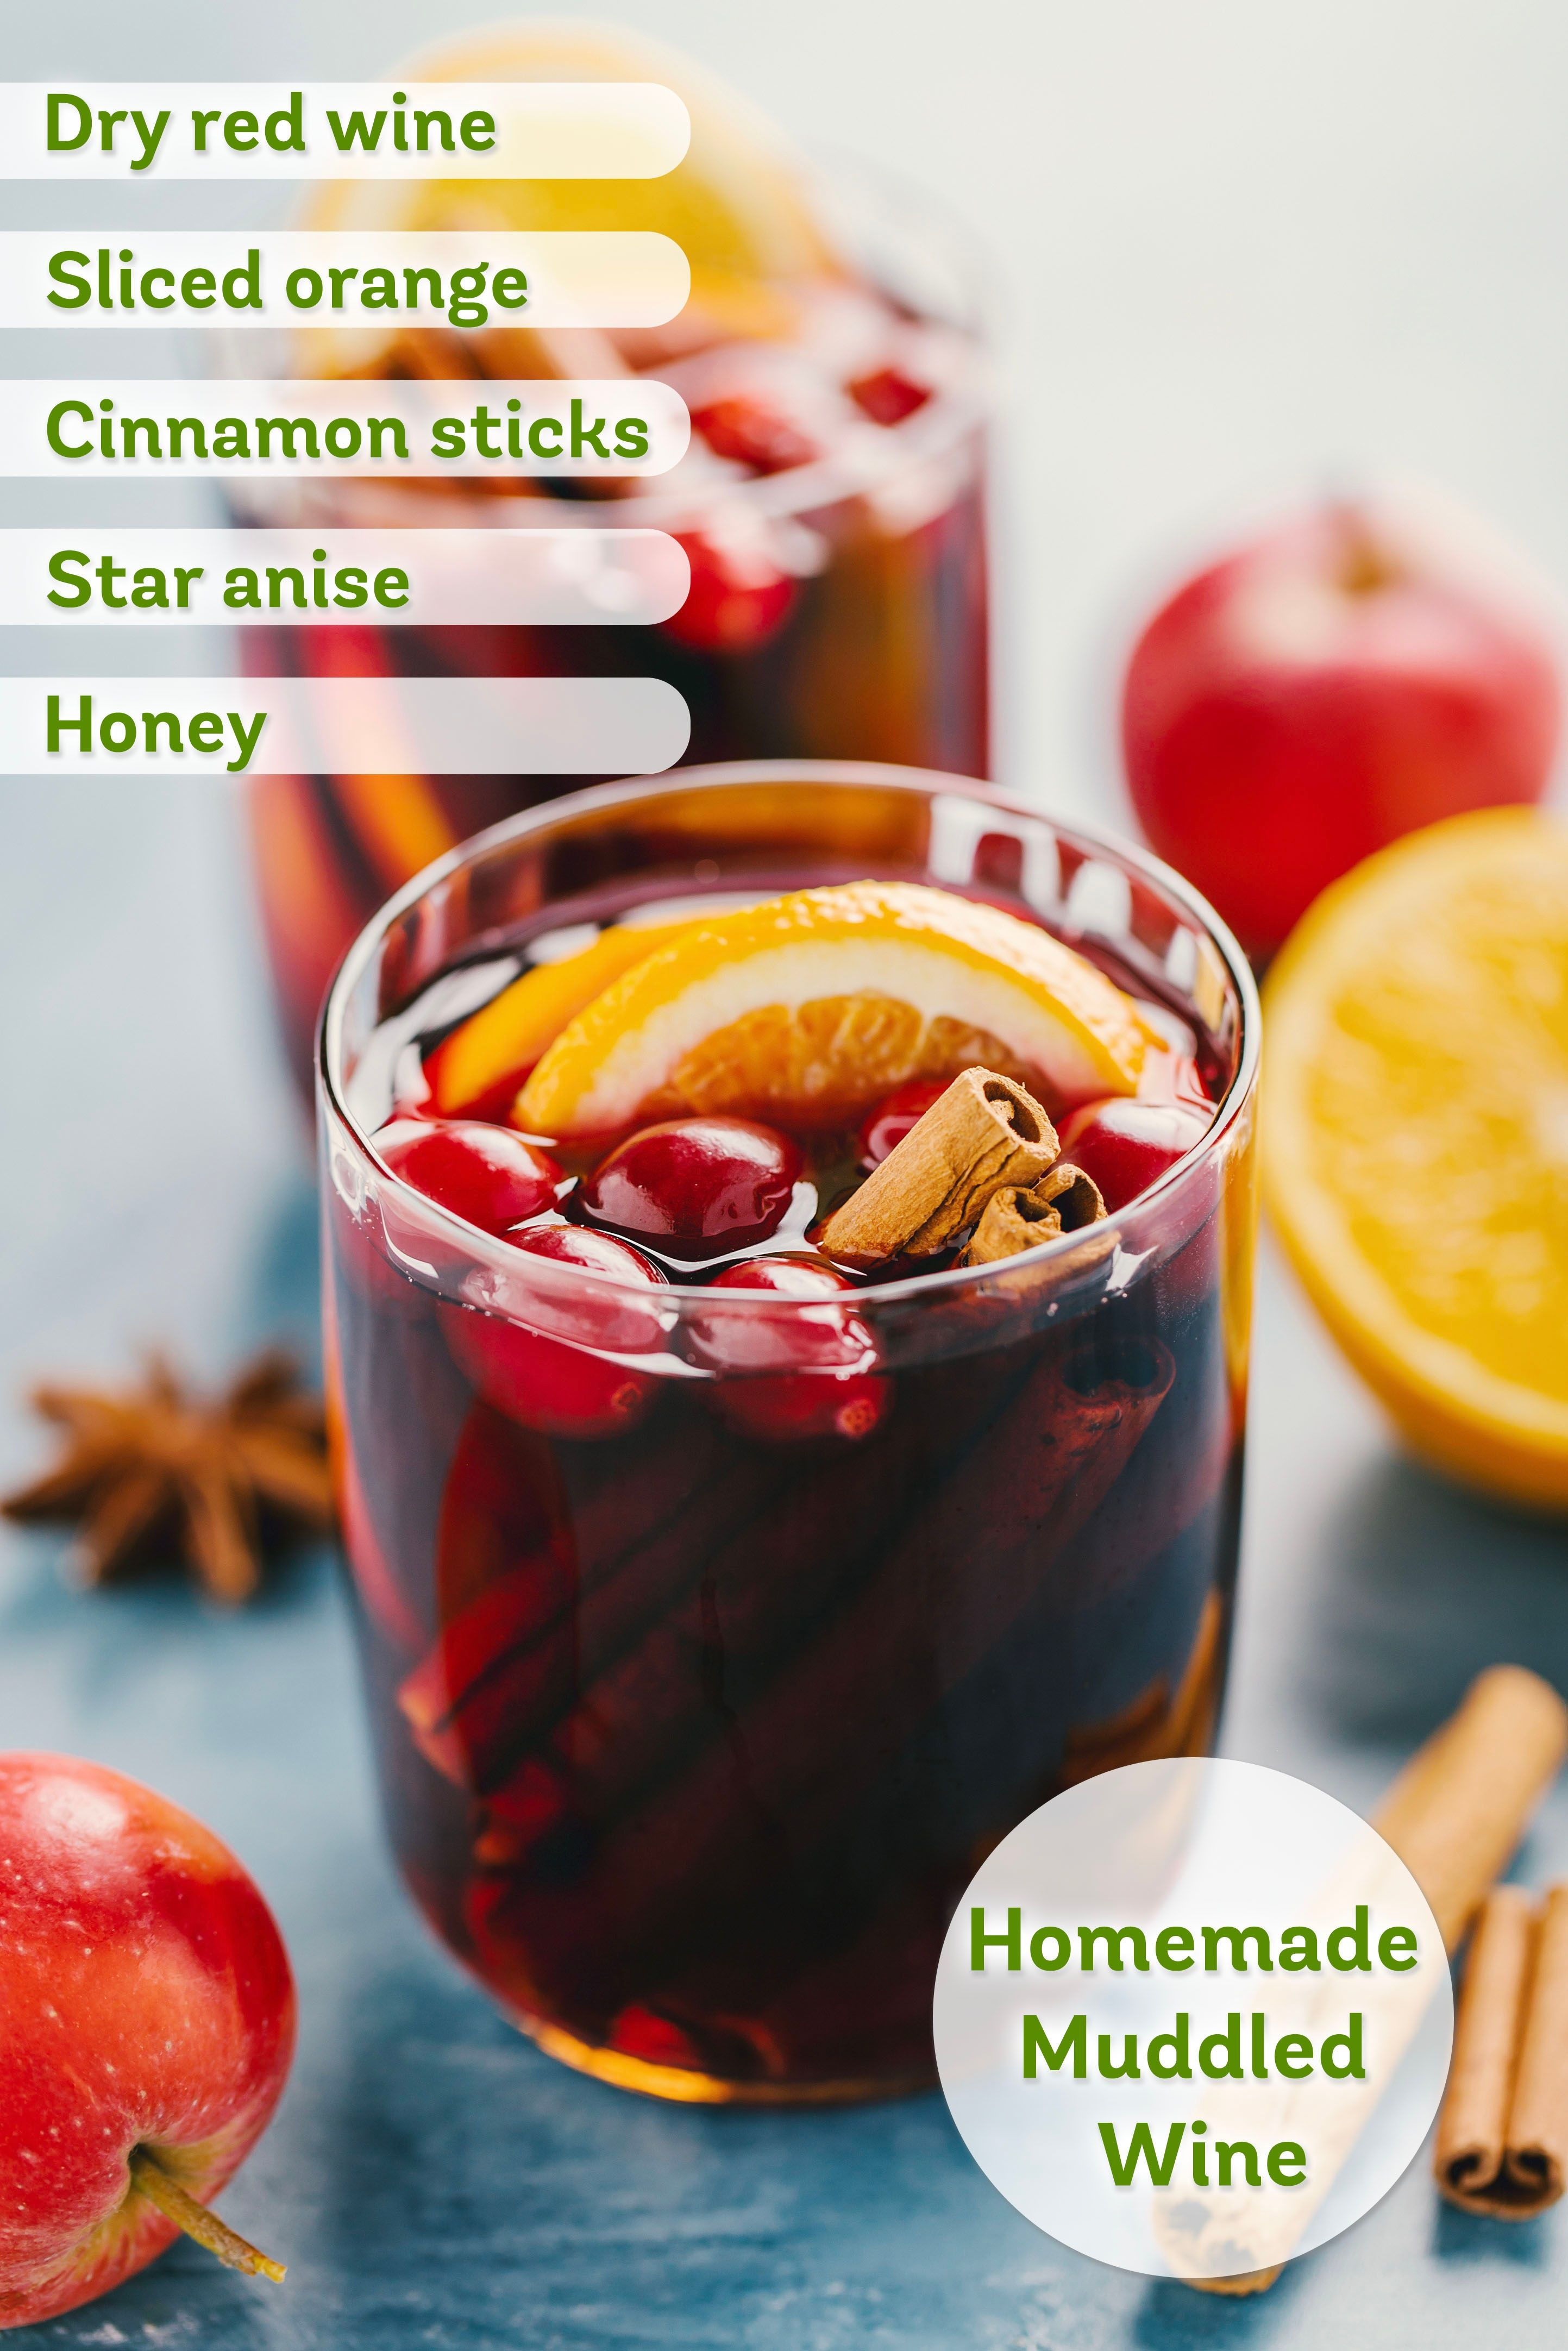 Expecting Holiday Guests Get Ready To Impress This Muddled Wine Recipe Is Easy To Make And Best Served Warm You Can Even Add Brand Recipes Wine Recipes Food